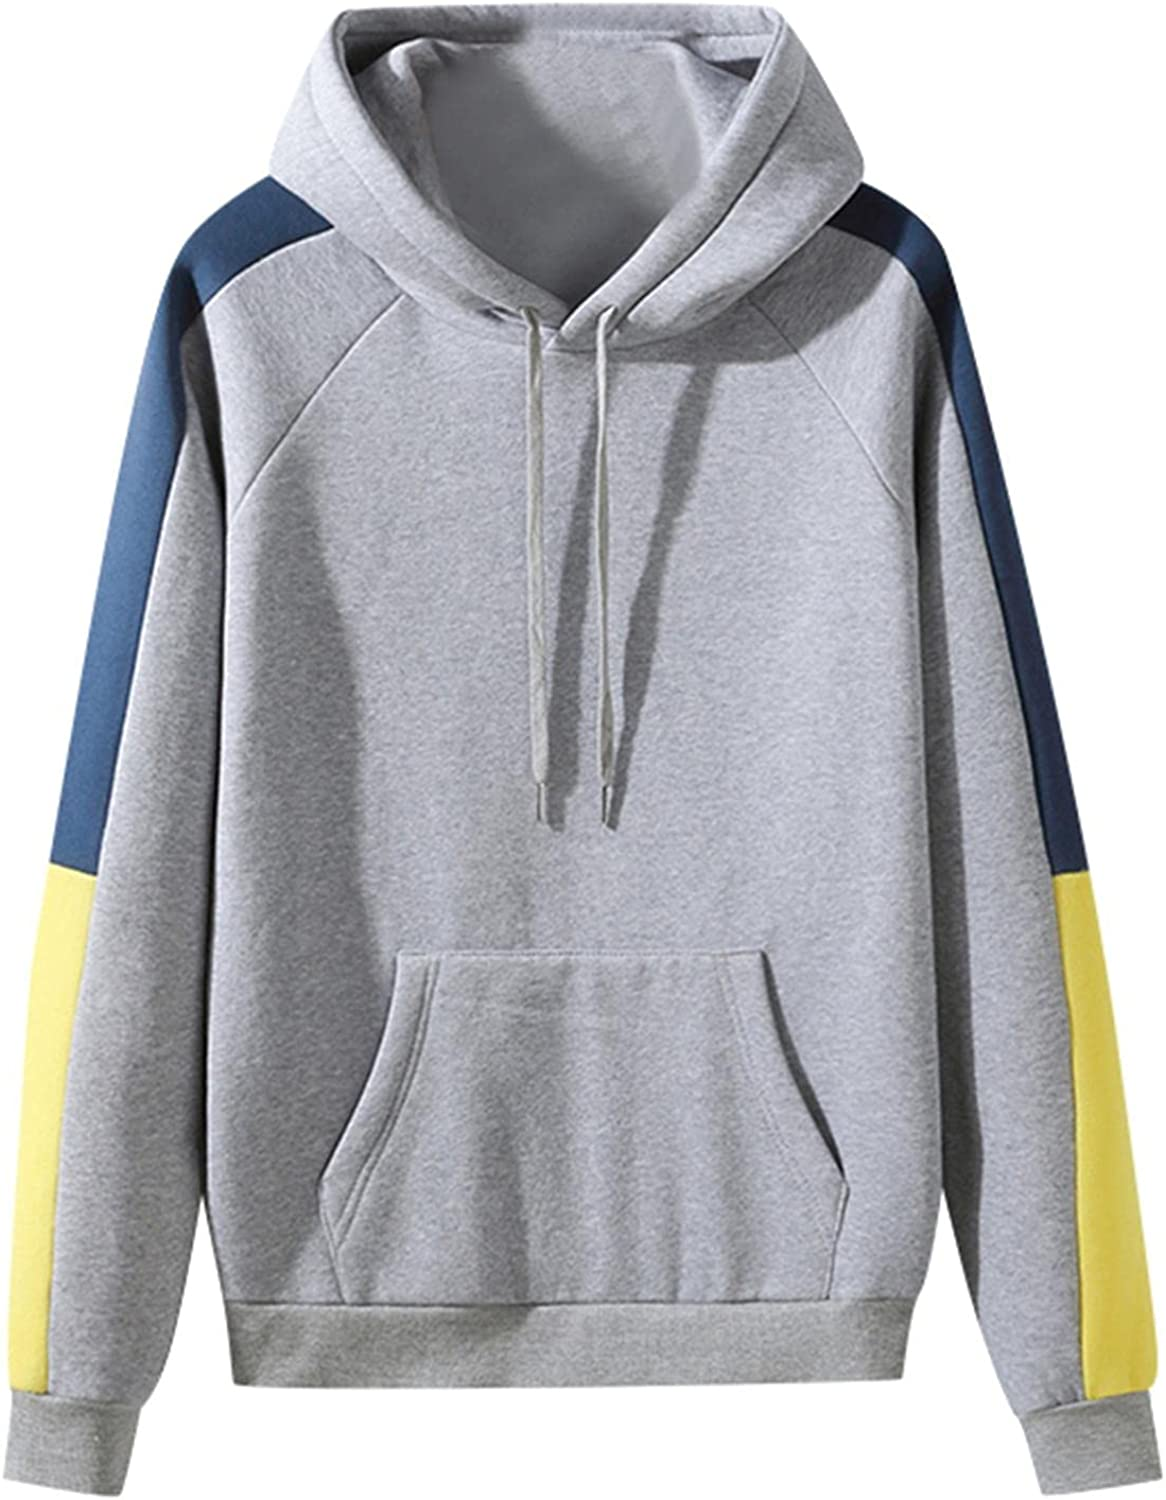 Jacksonville Mall Now free shipping Qsctys Men's Fashion Hoodies Pu Sweatshirts Patchwork Athletic